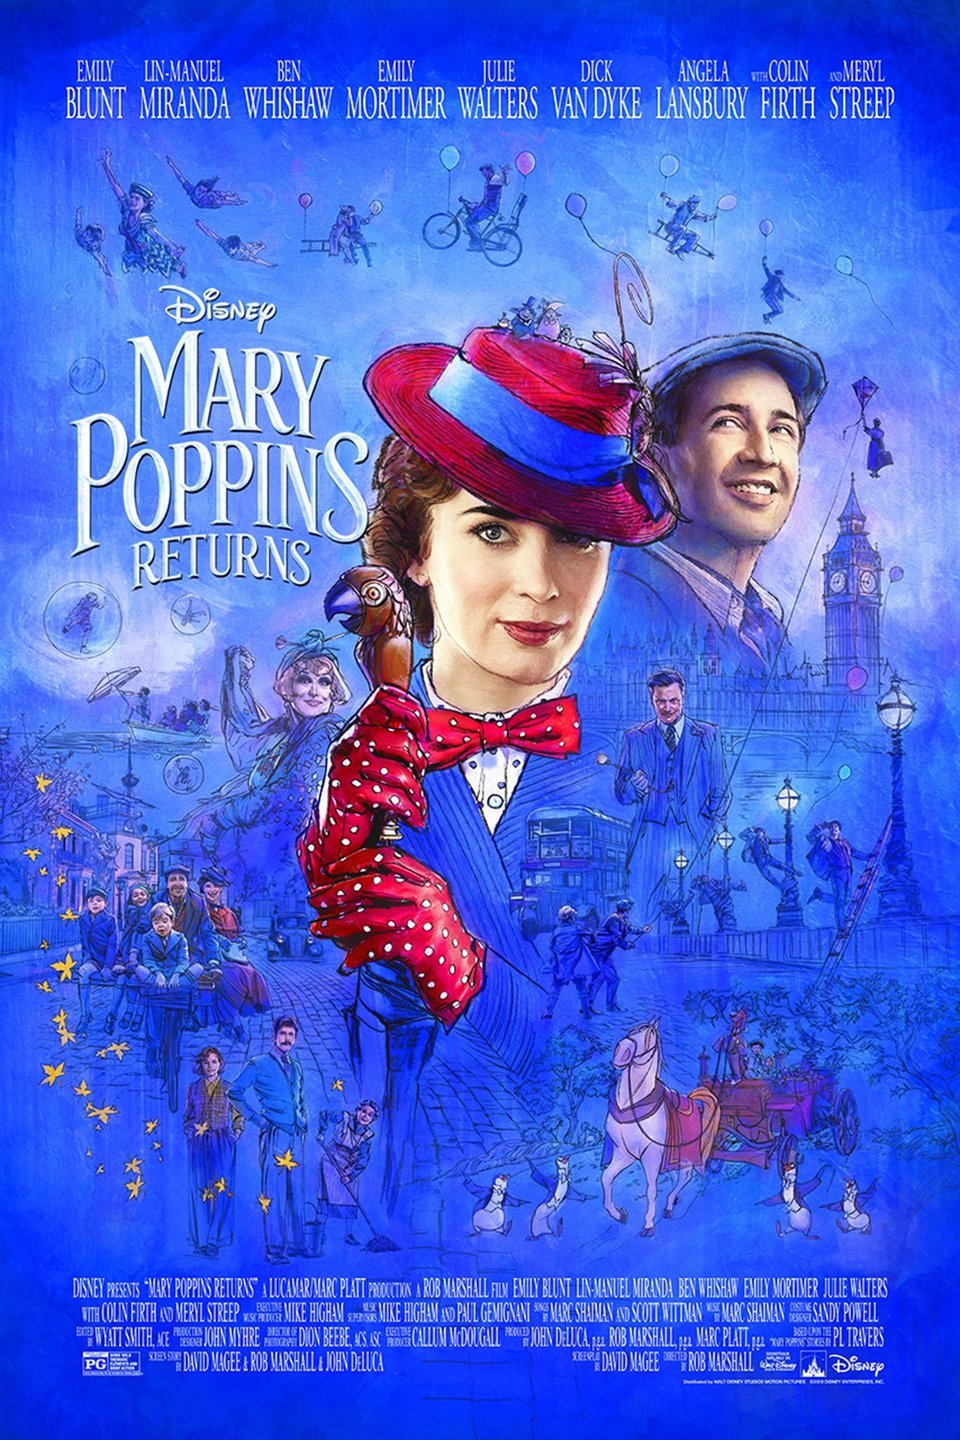 Review of Mary Poppins Returns - by Kathia WoodsMary Poppins is one of the most beloved children's stories of all time.Julie Andrew is irreplaceable. So when Disney announced it would revisit this classic, there were many doubts. How can one improve upon perfection? The answer is don't.